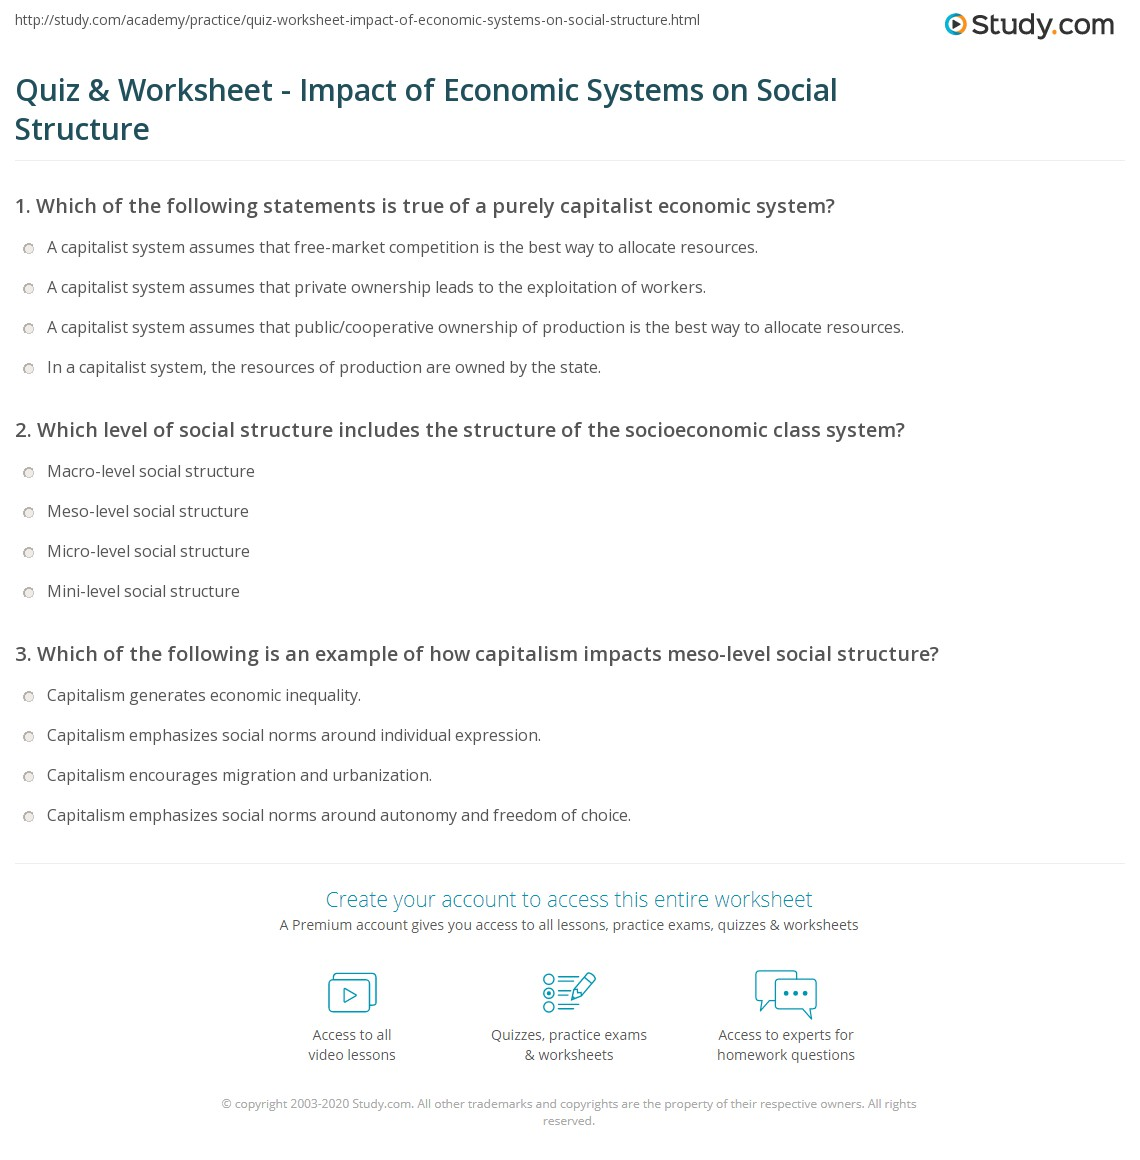 Quiz Worksheet Impact Of Economic Systems On Social